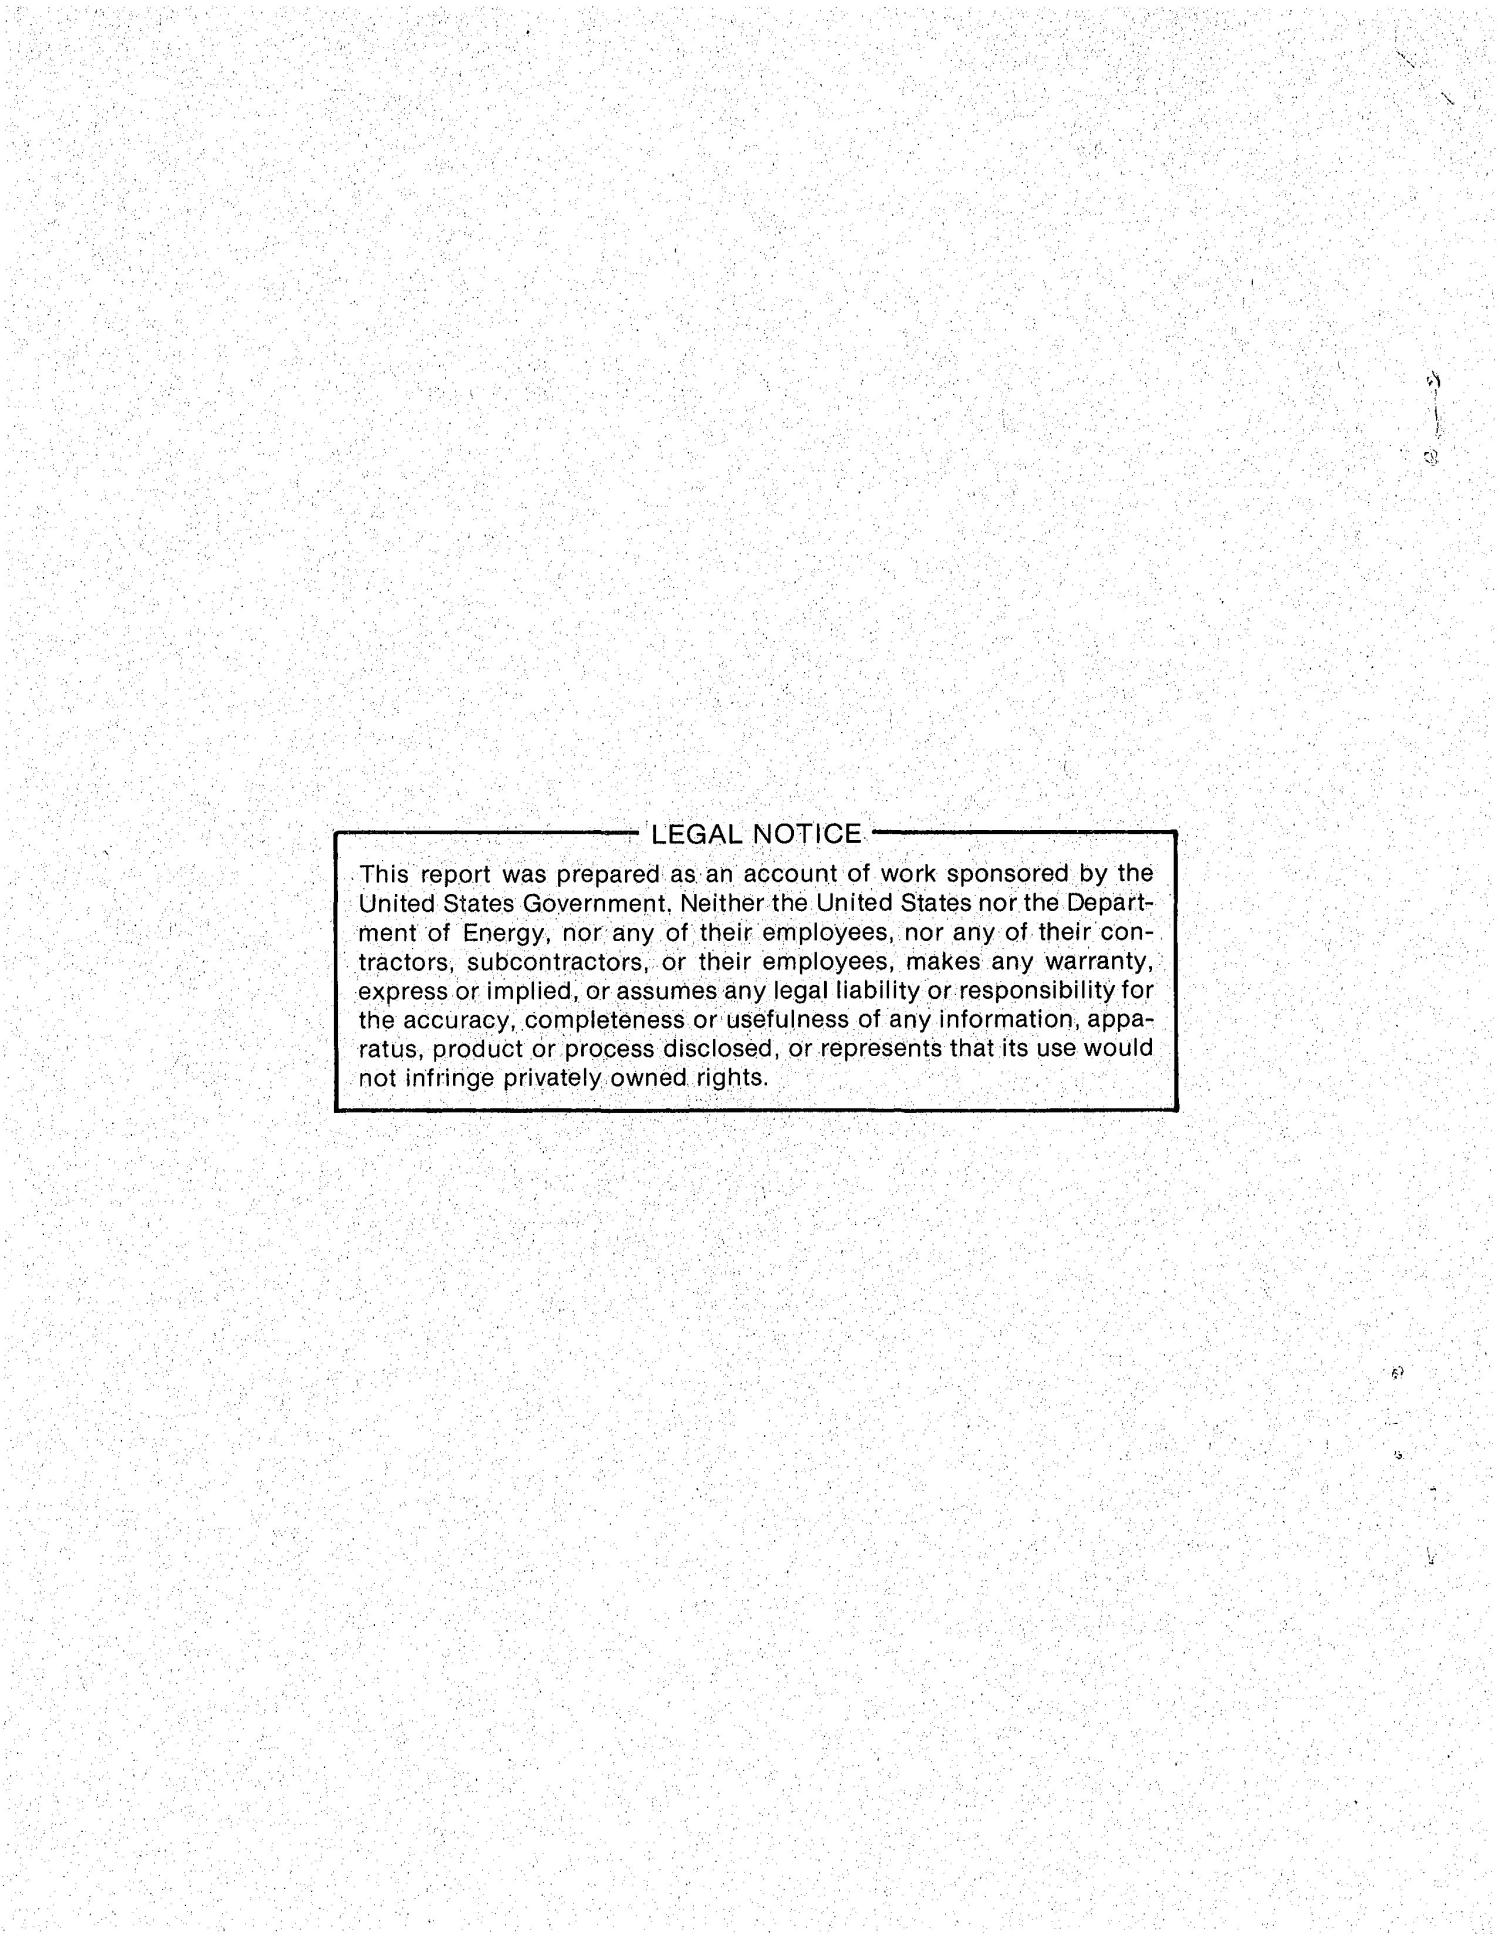 Combustion Research Program: chapter from Energy and Environment Division annual report 1977                                                                                                      [Sequence #]: 2 of 28